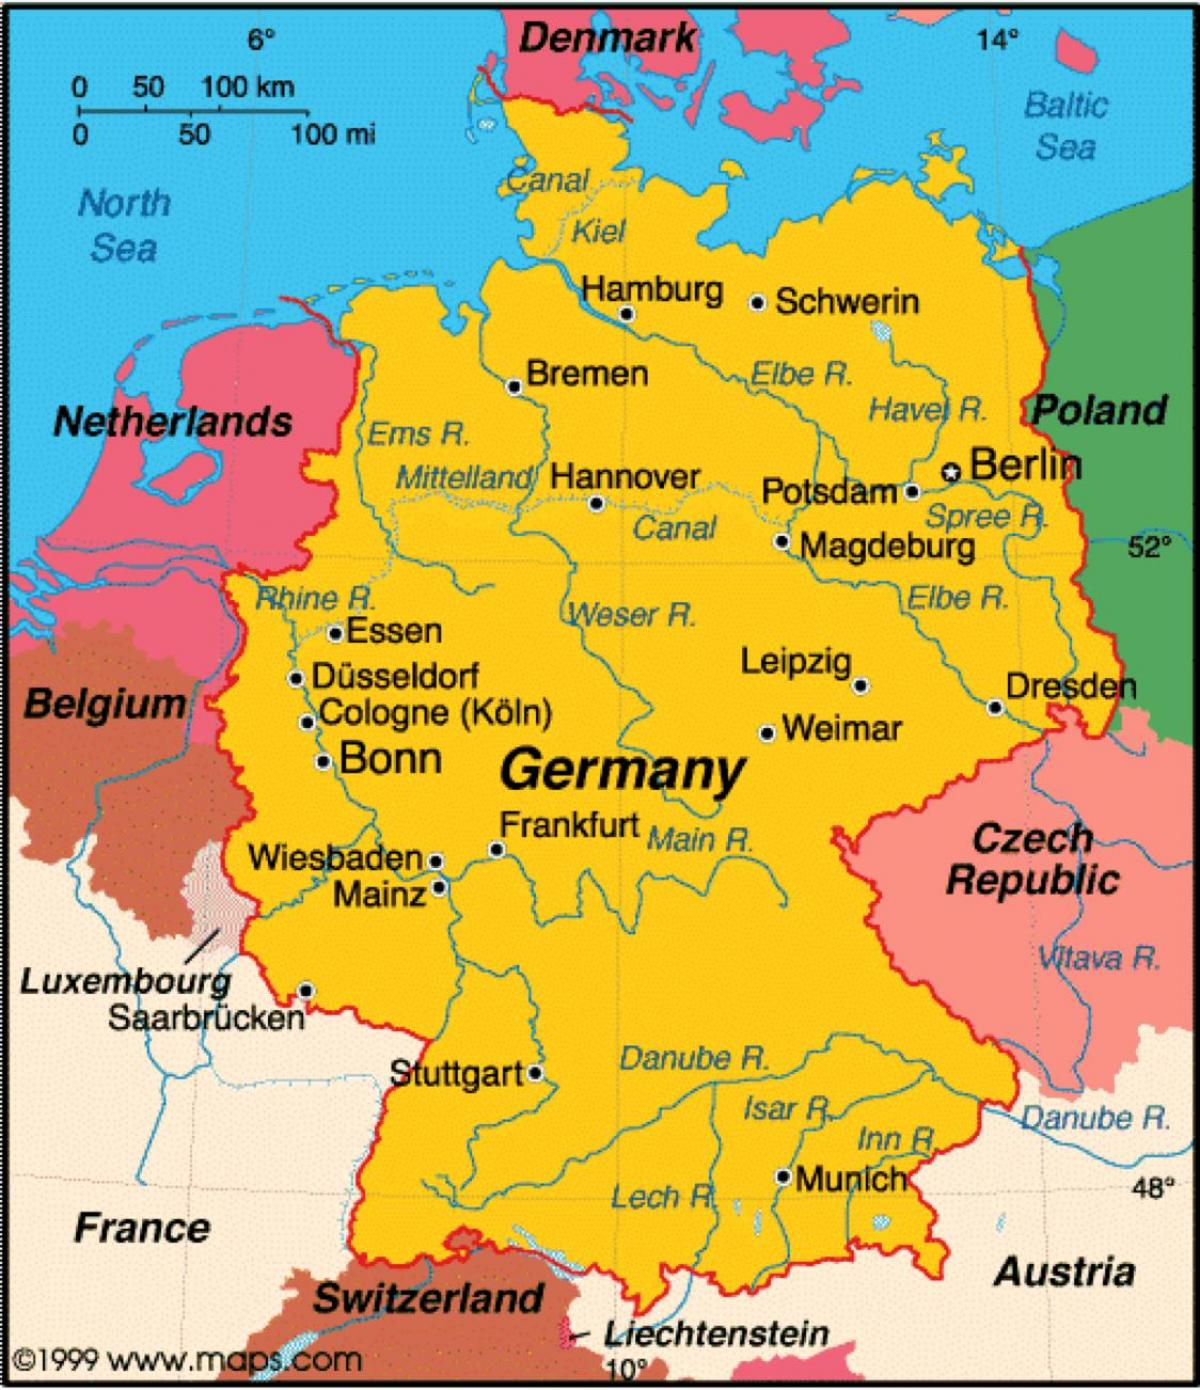 Germany maps Show map of Germany Western Europe Europe